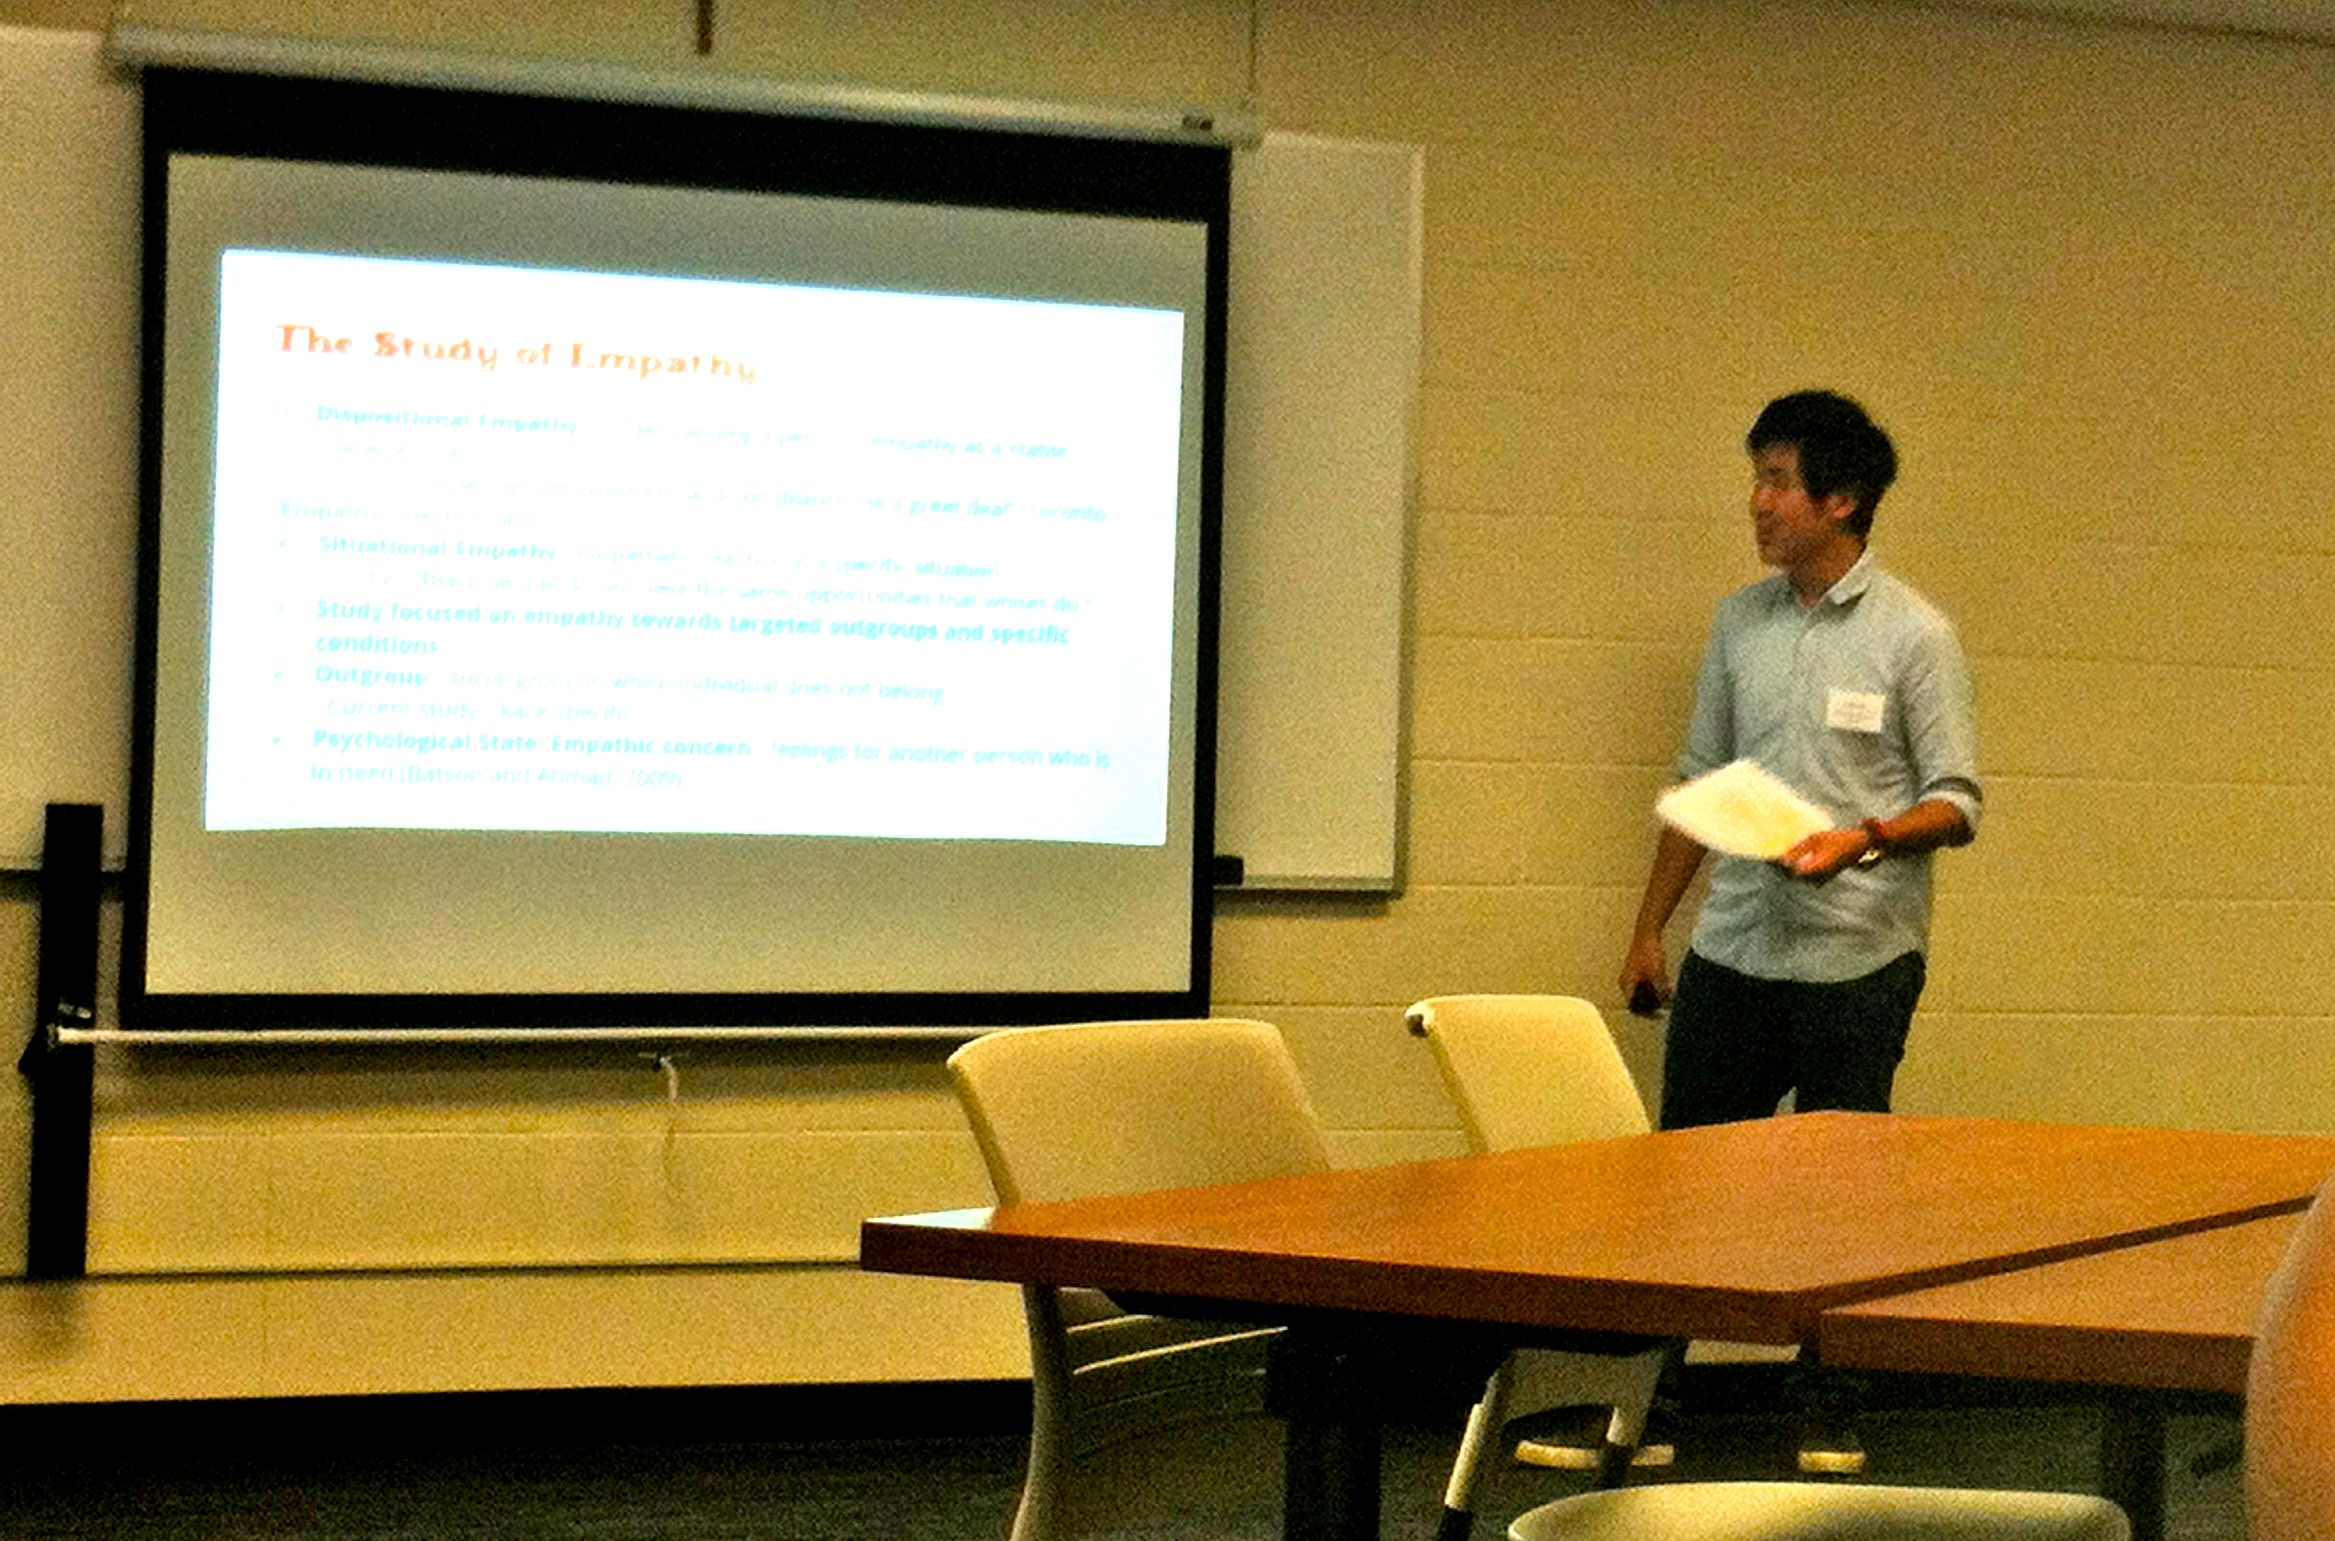 John Wu presenting at the 2nd Annual Psychology Research Conference at Chaminade University